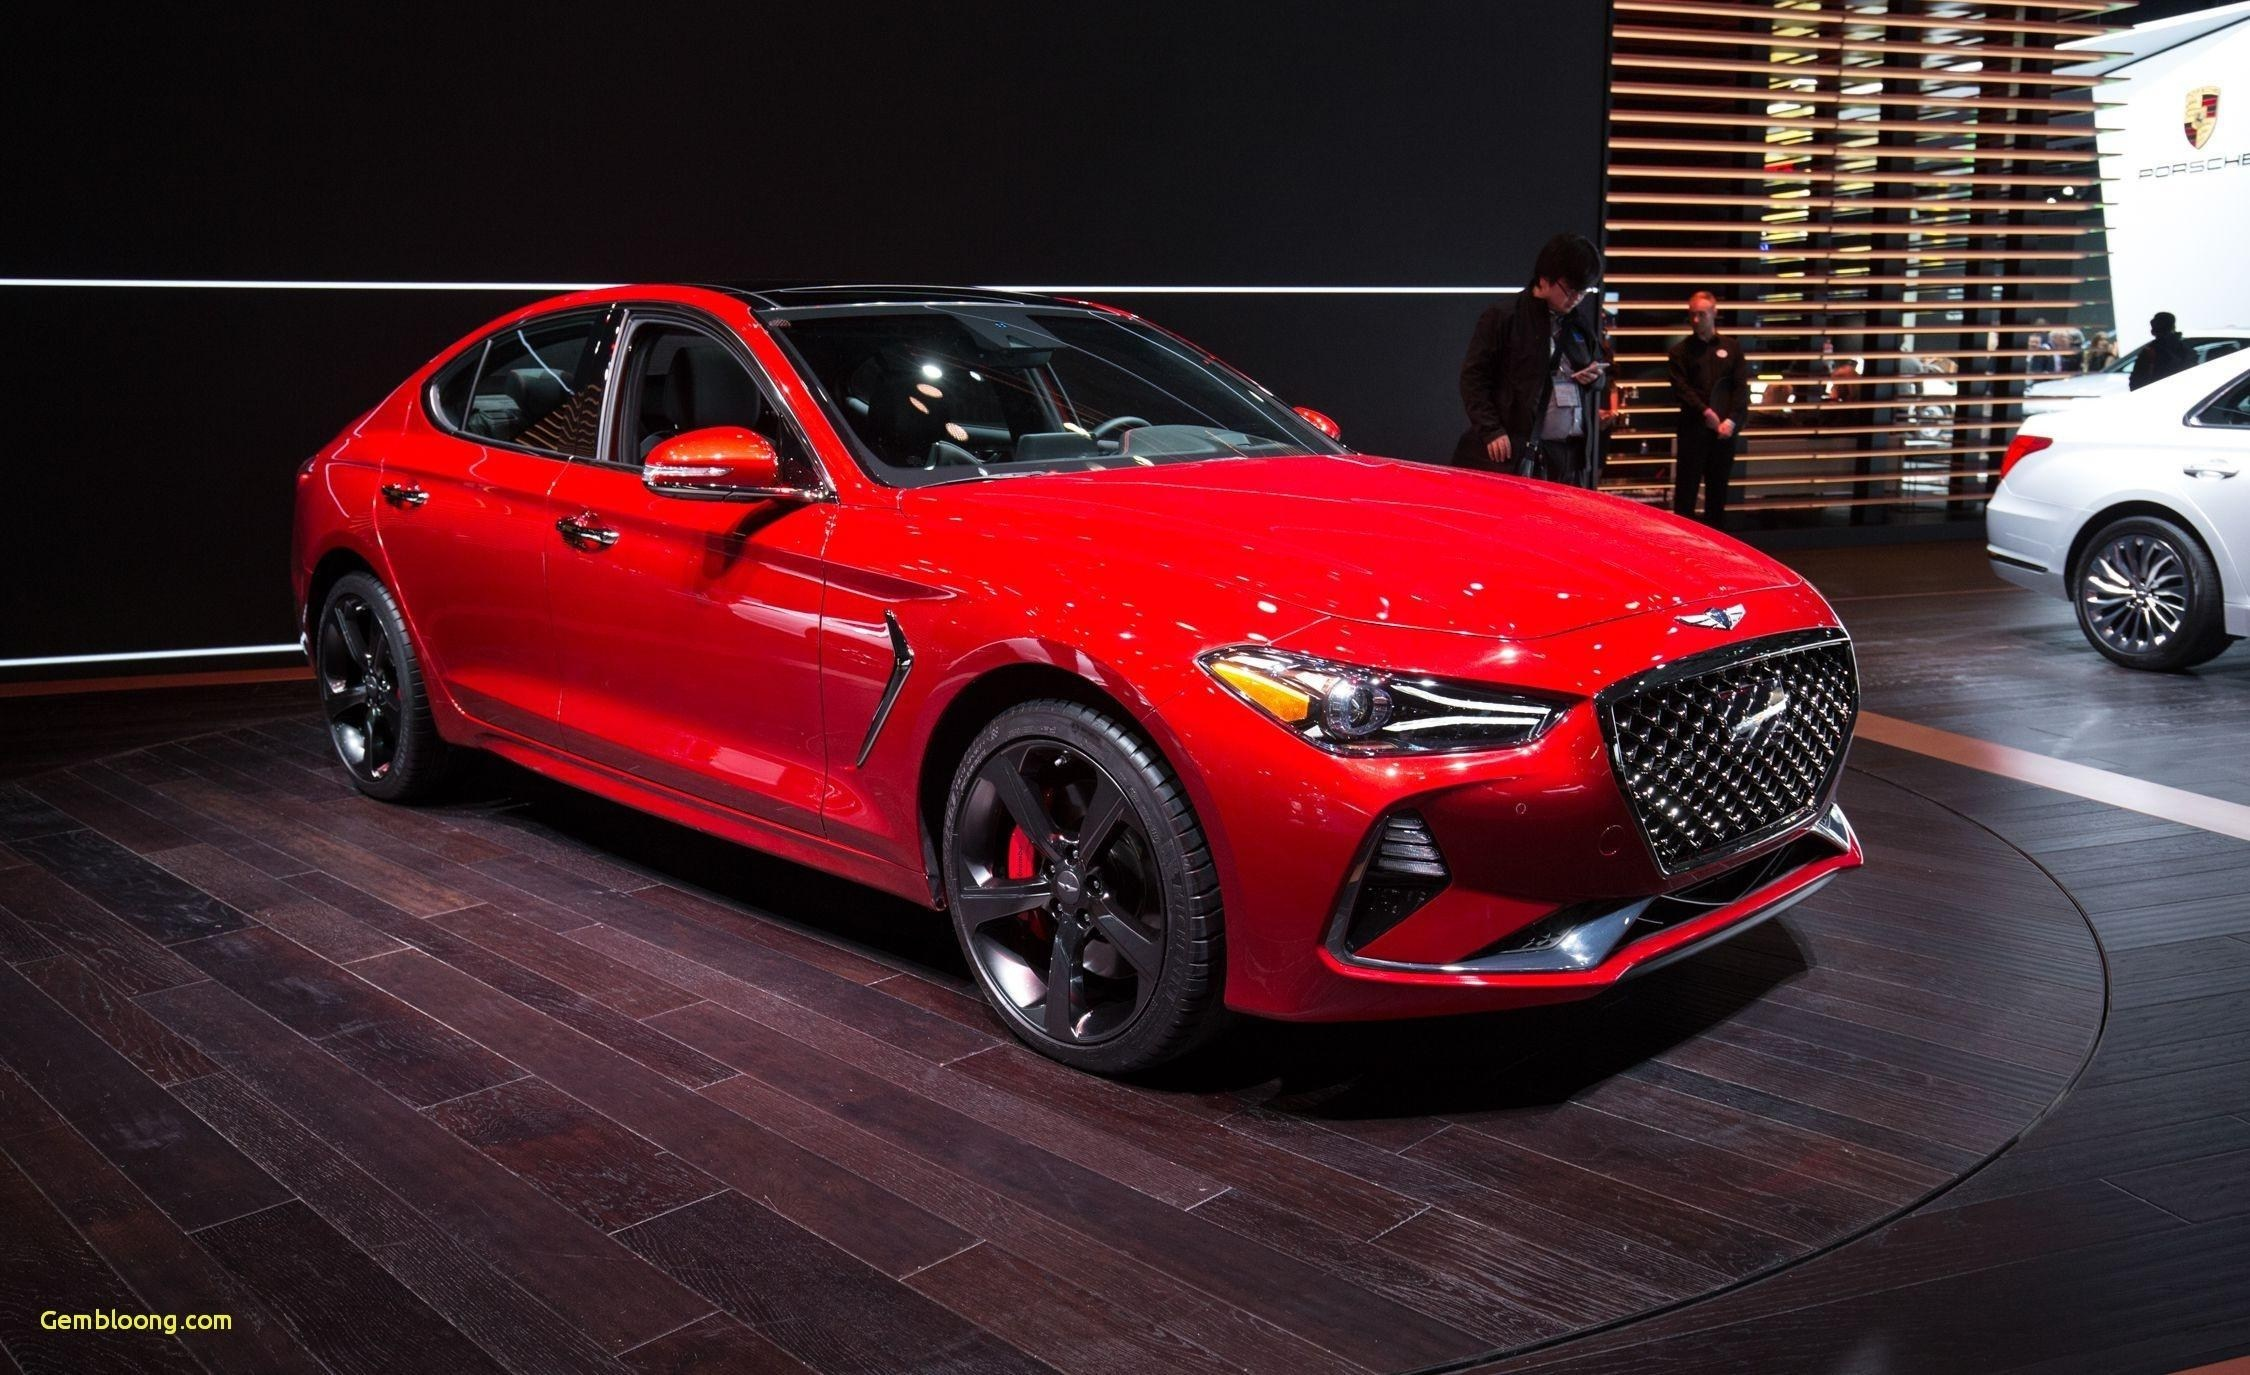 59 All New 2019 Hyundai Genesis Coupe New Concept